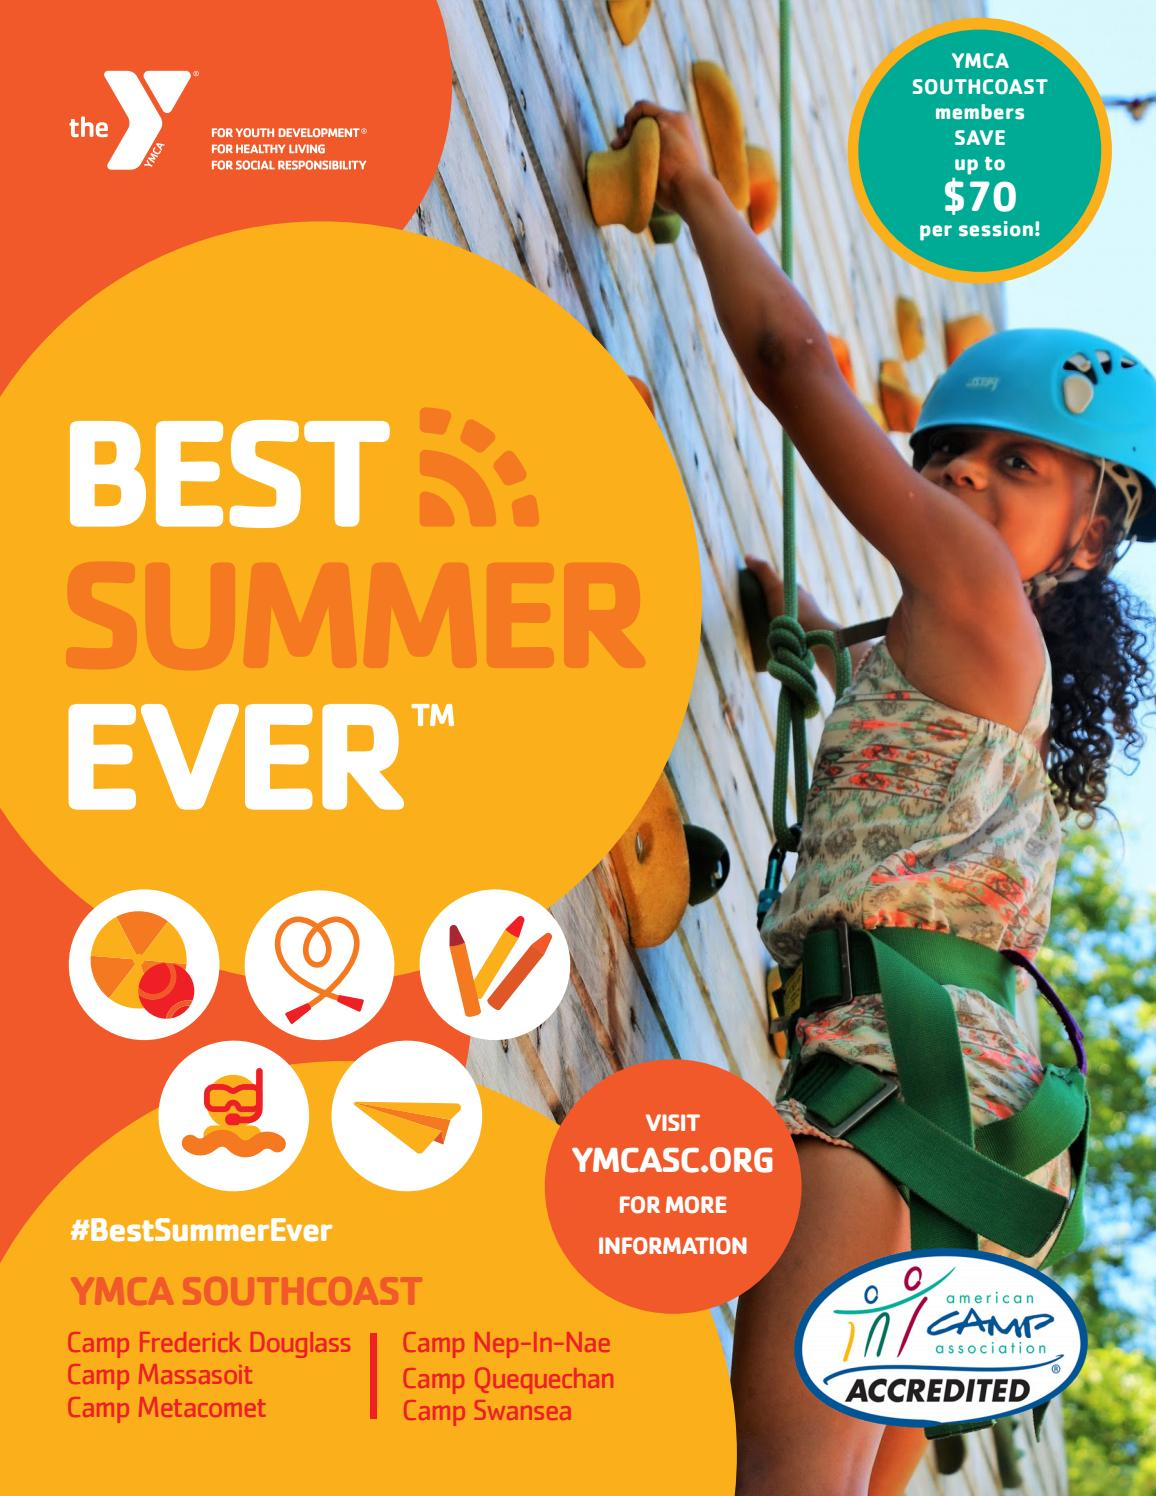 2018 Summer Camp Brochure by YMCA SOUTHCOAST - issuu